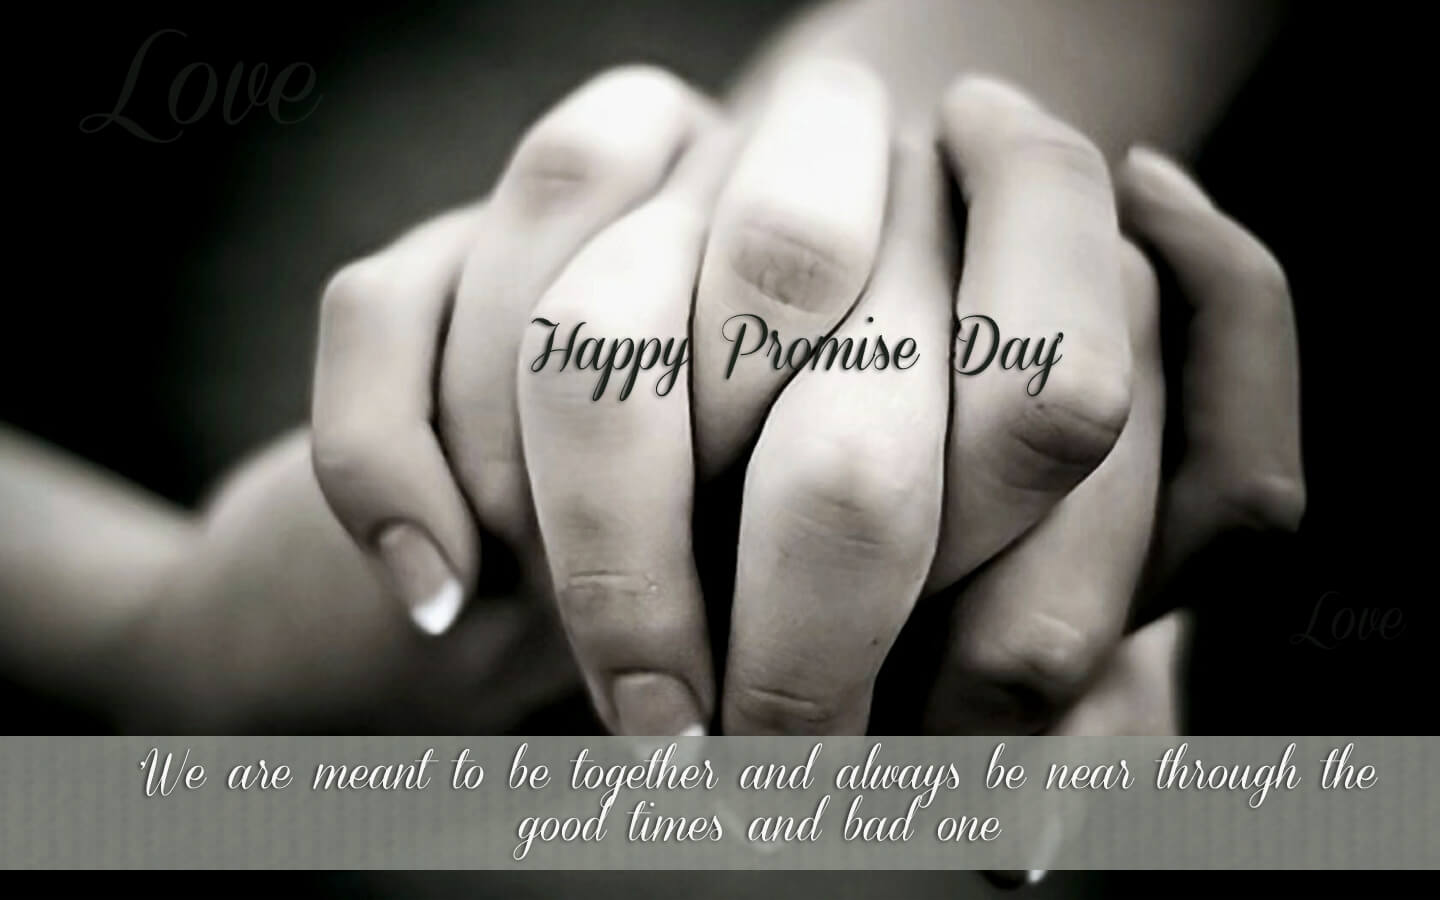 happy promise day wishes love valentine image hd wallpaper